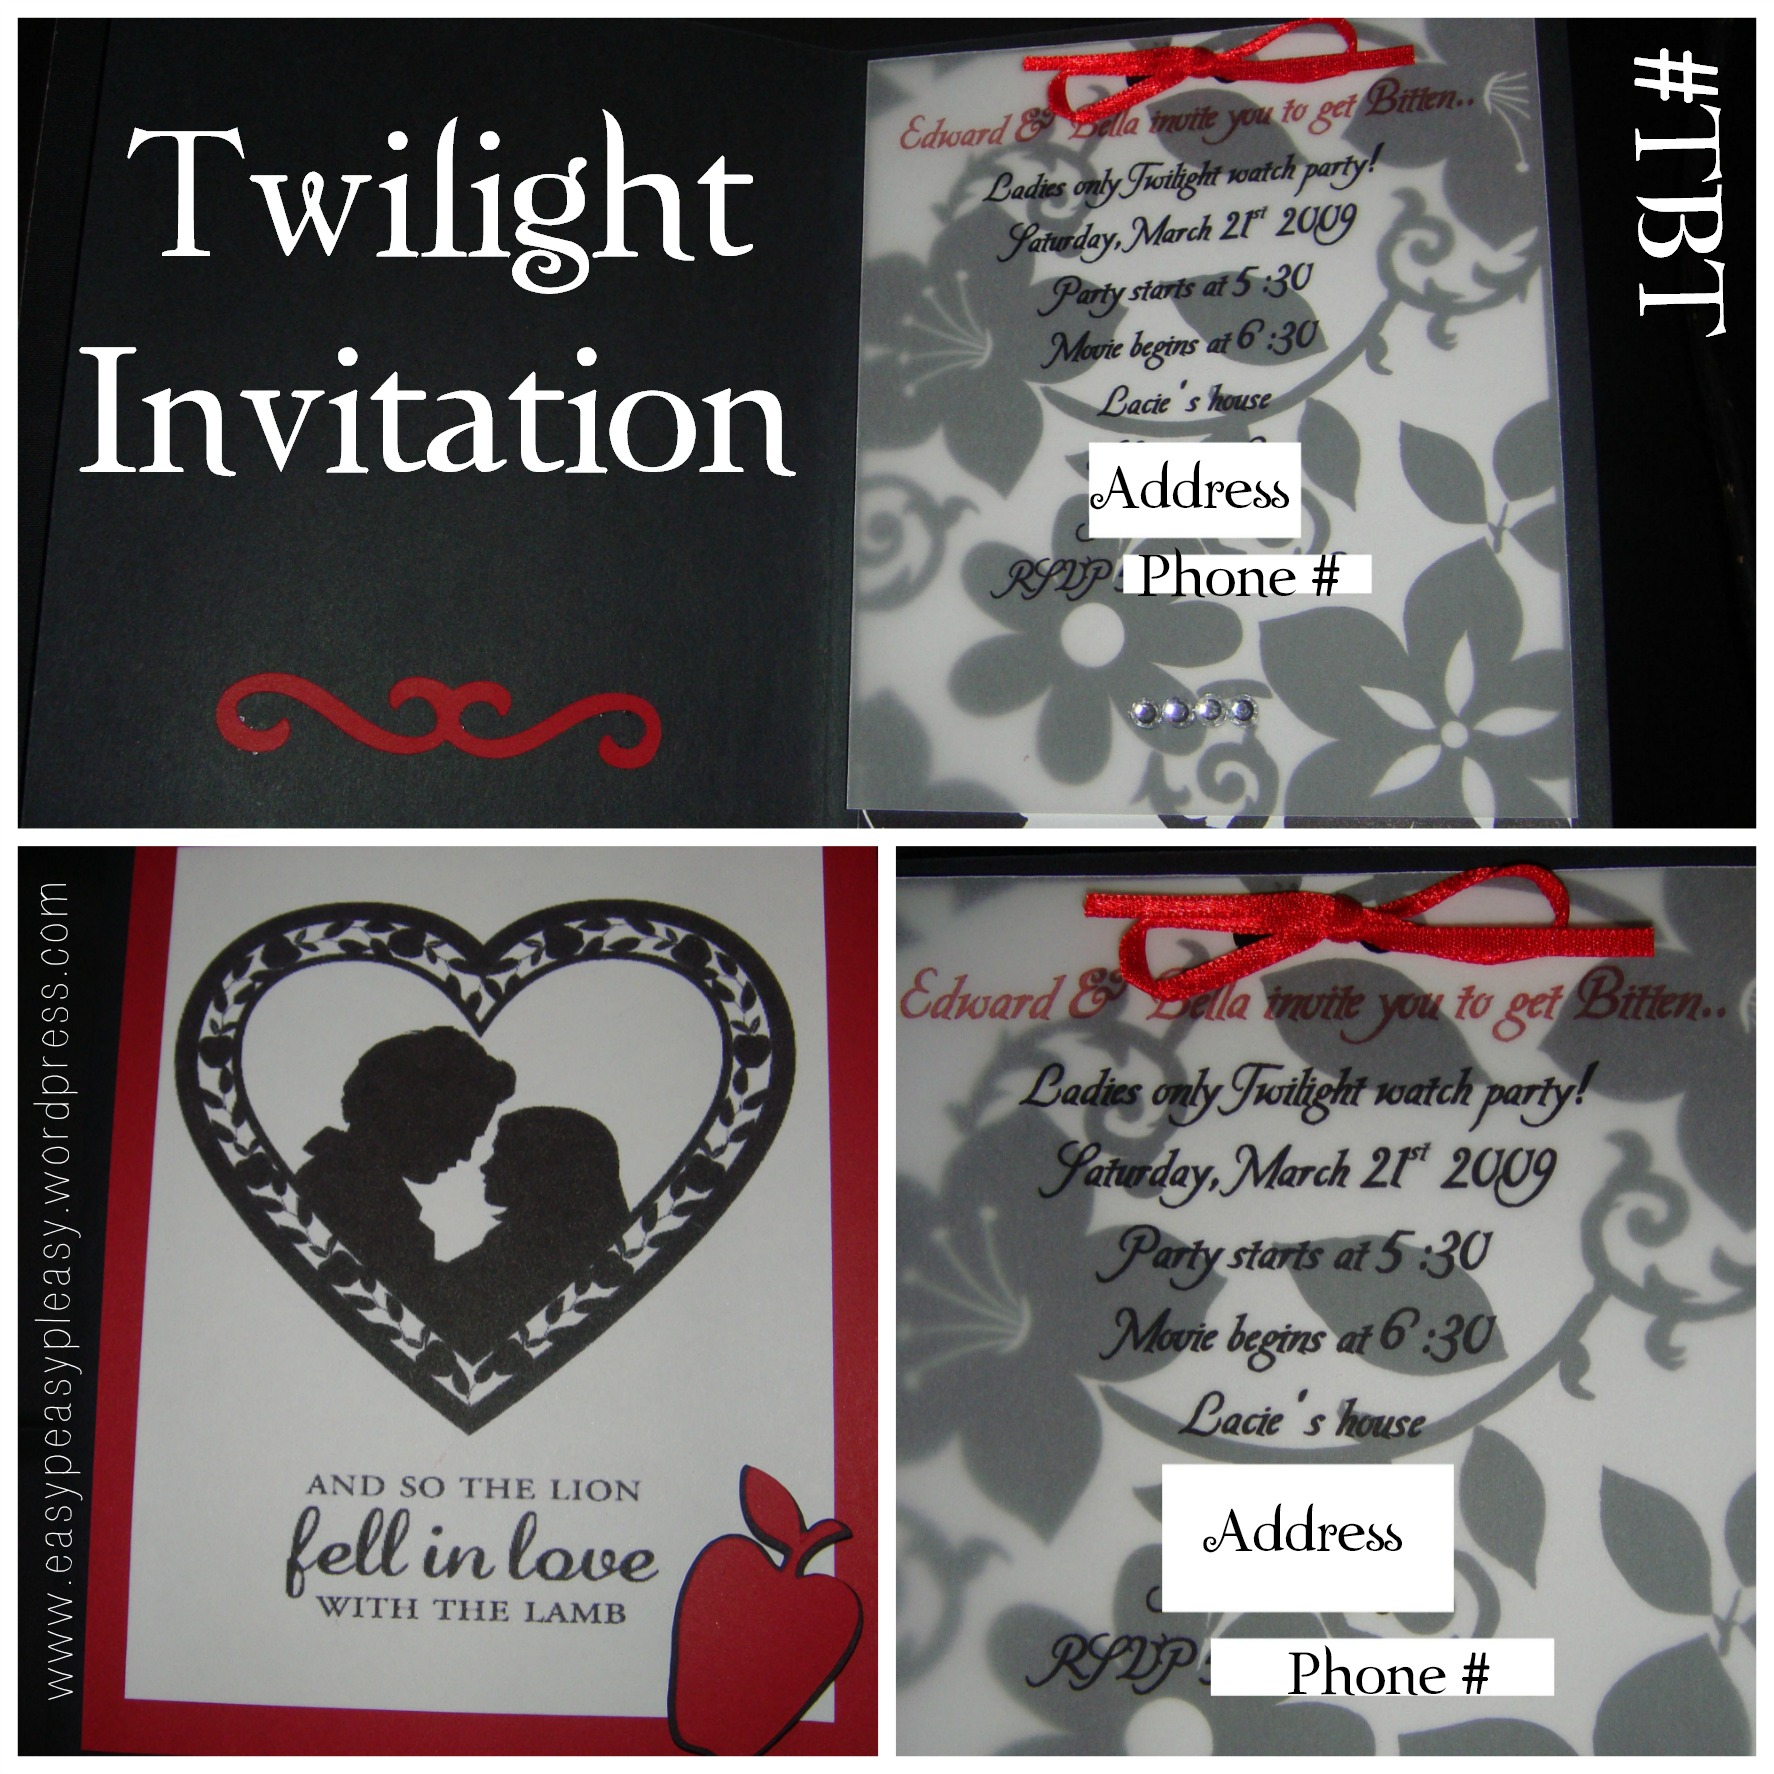 Twilight Invitation Opened and Front View #TBT